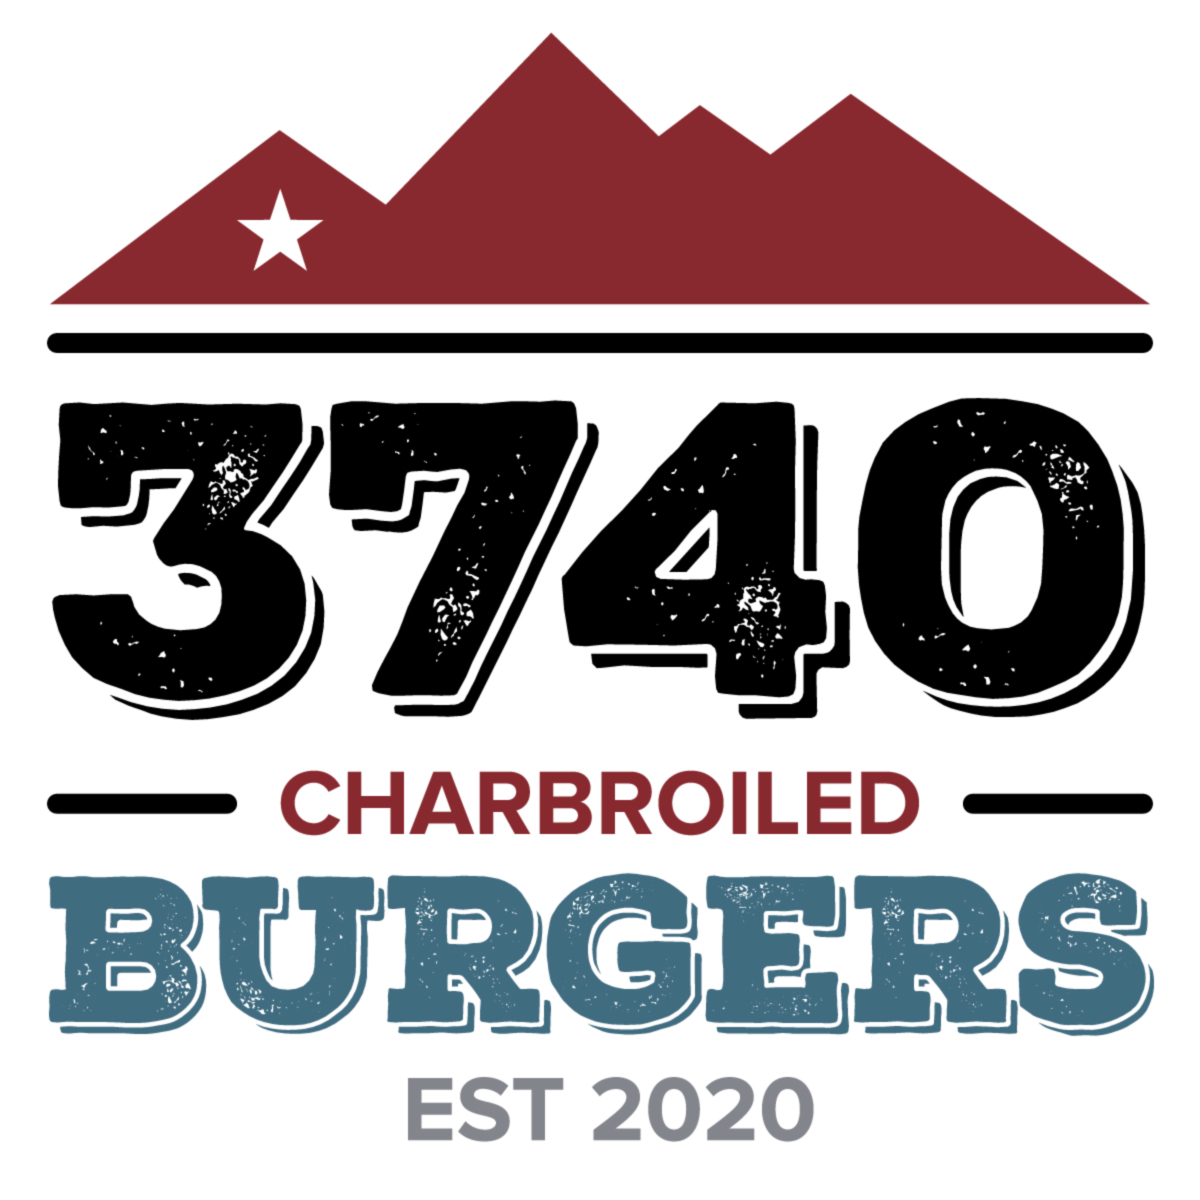 3740 Charbroiled Burgers